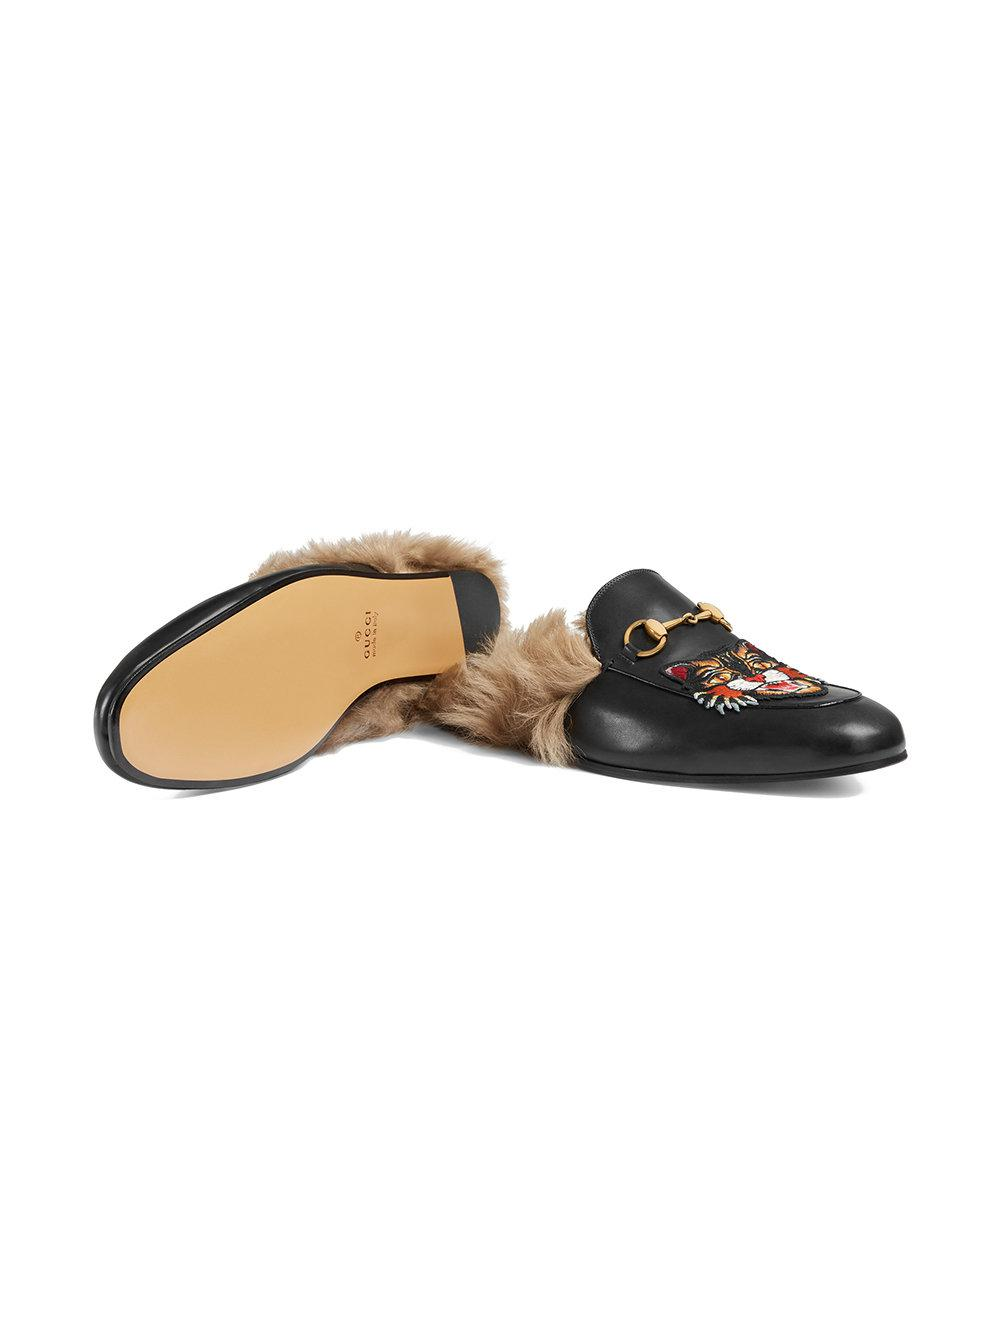 d3439faa51b Gucci - Black Princetown Slippers With Angry Cat Appliqué for Men - Lyst.  View fullscreen